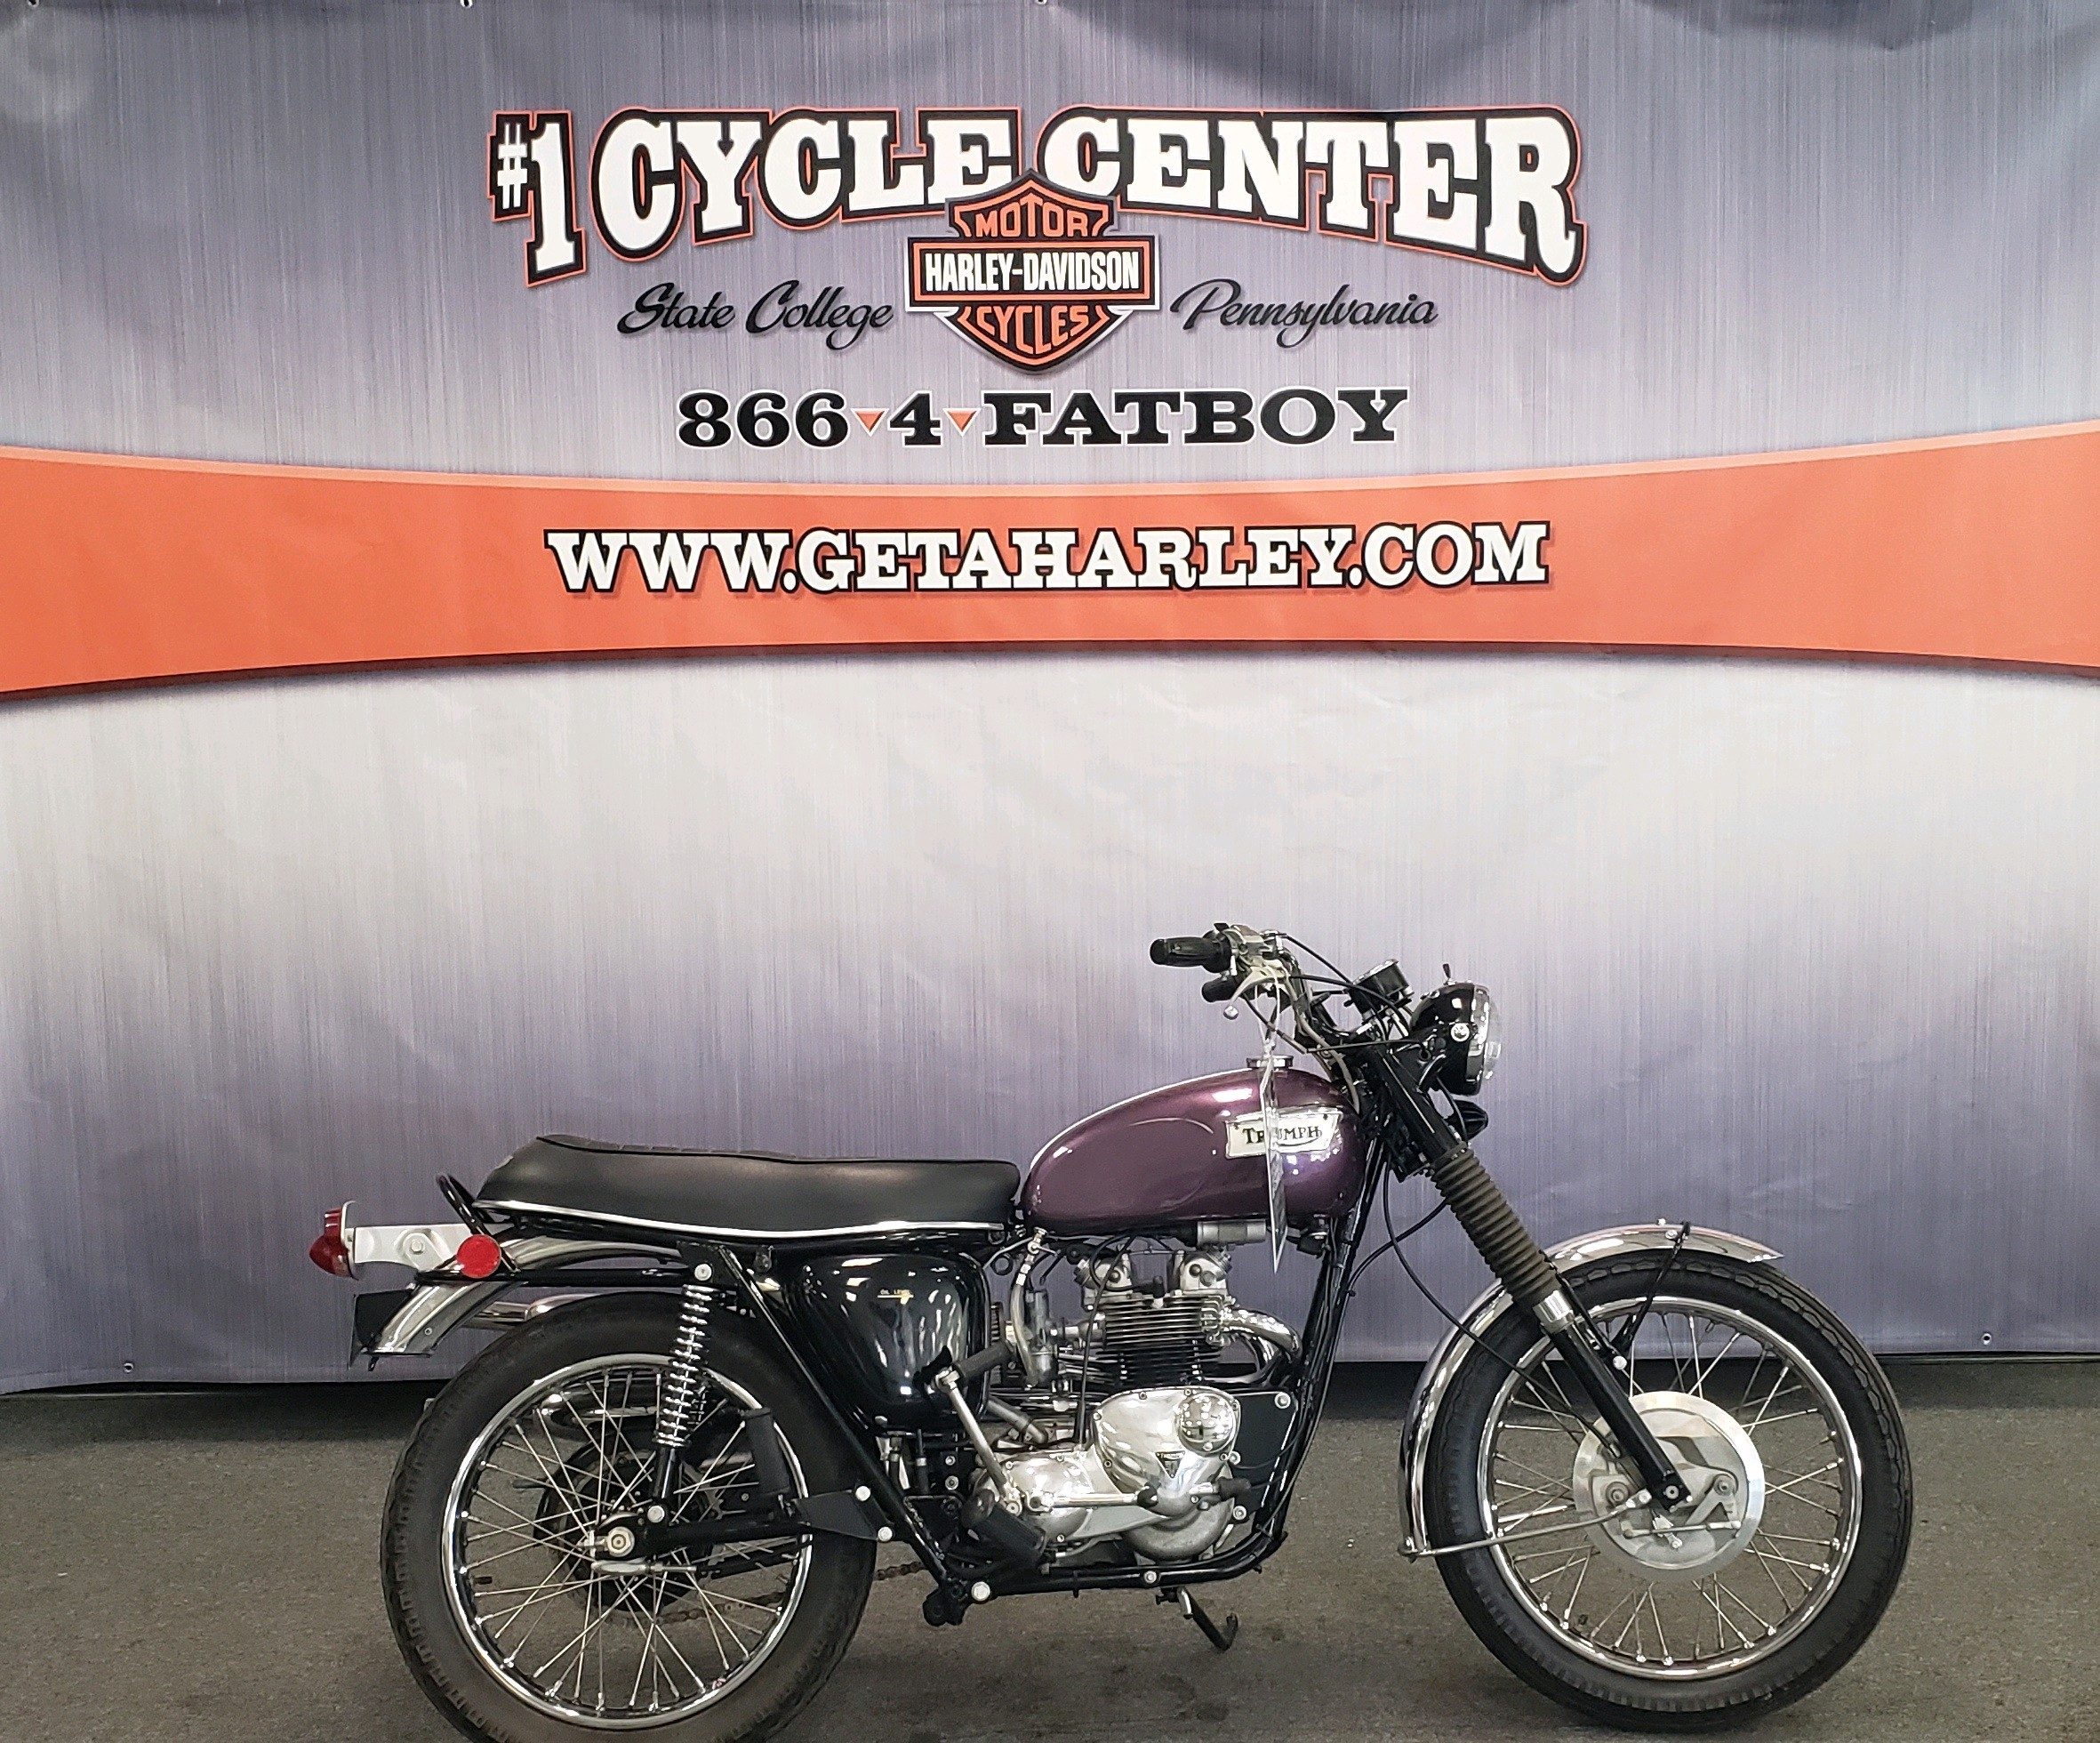 1971 TRIUMP TROPHY at #1 Cycle Center Harley-Davidson